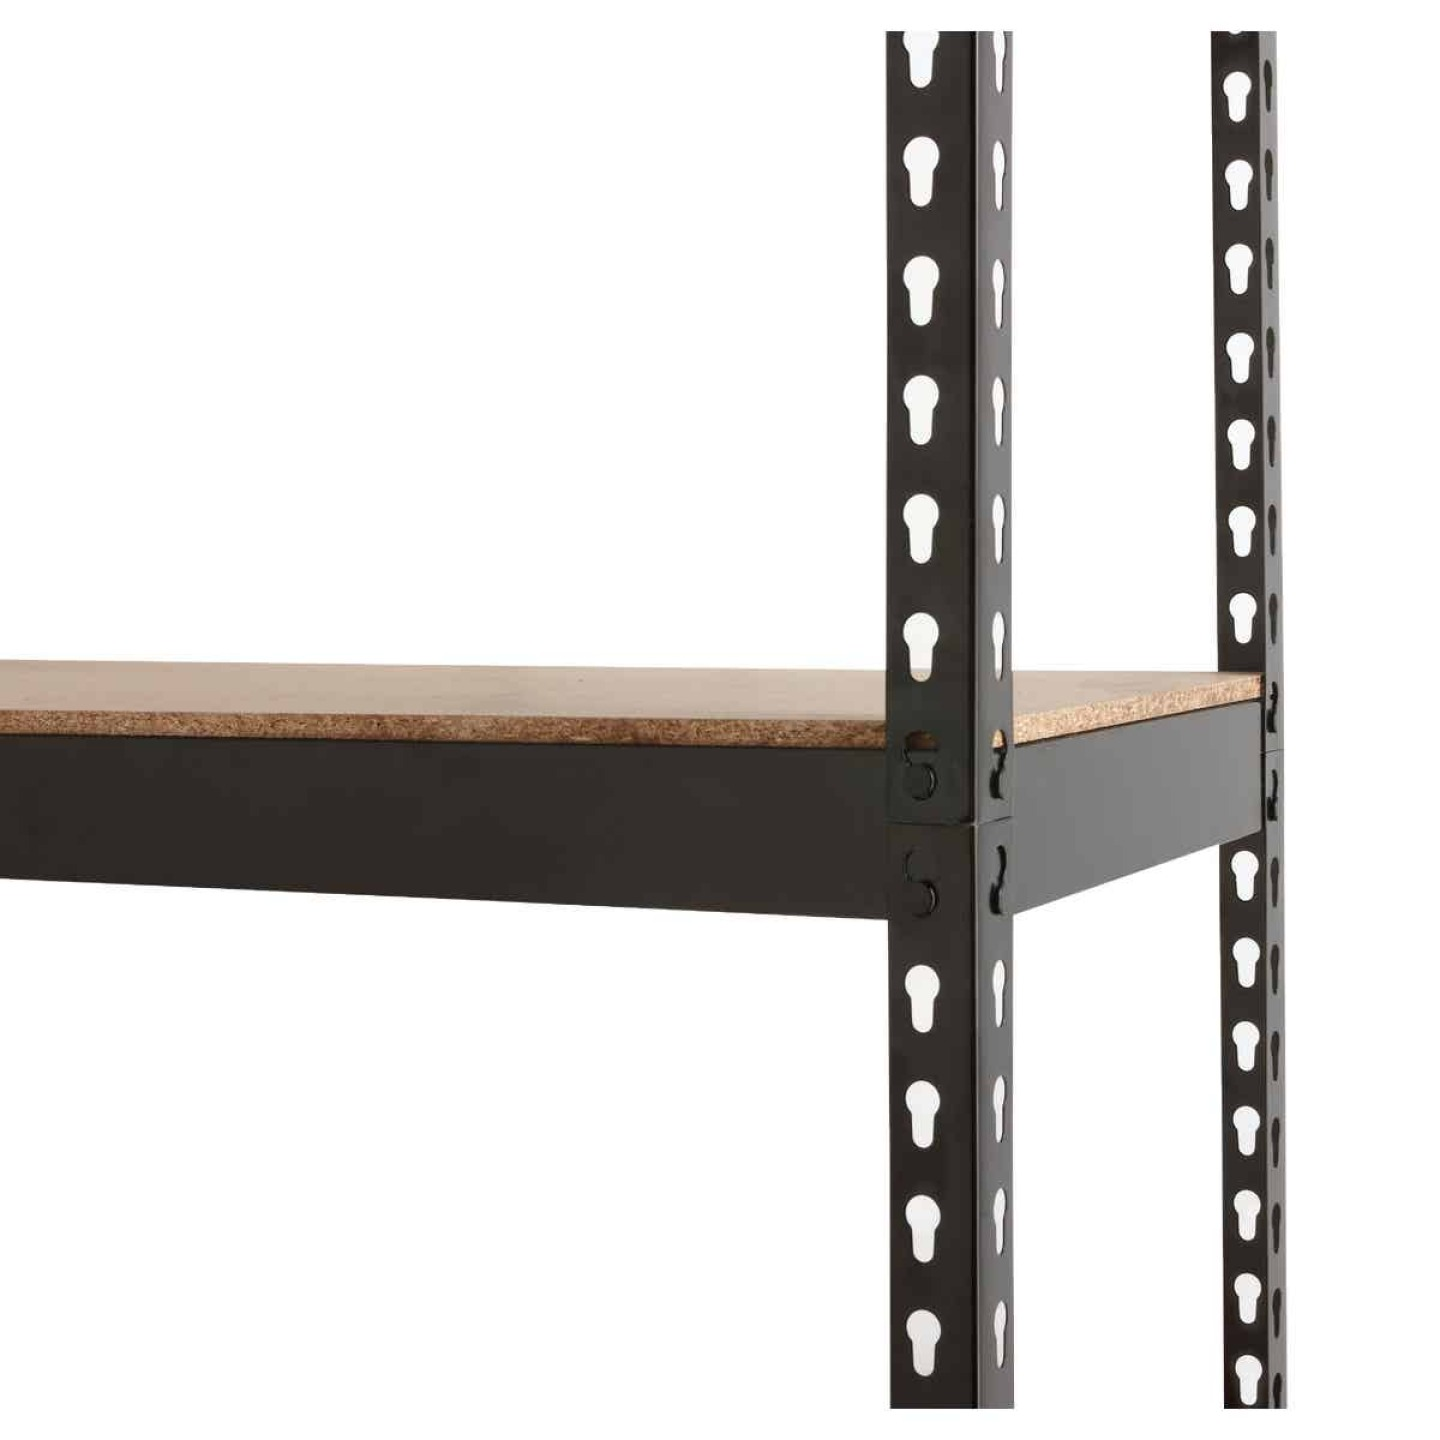 L-Beam 34 In. x 72 In. x 14 In. Black Steel 5-Tier Shelving Image 4